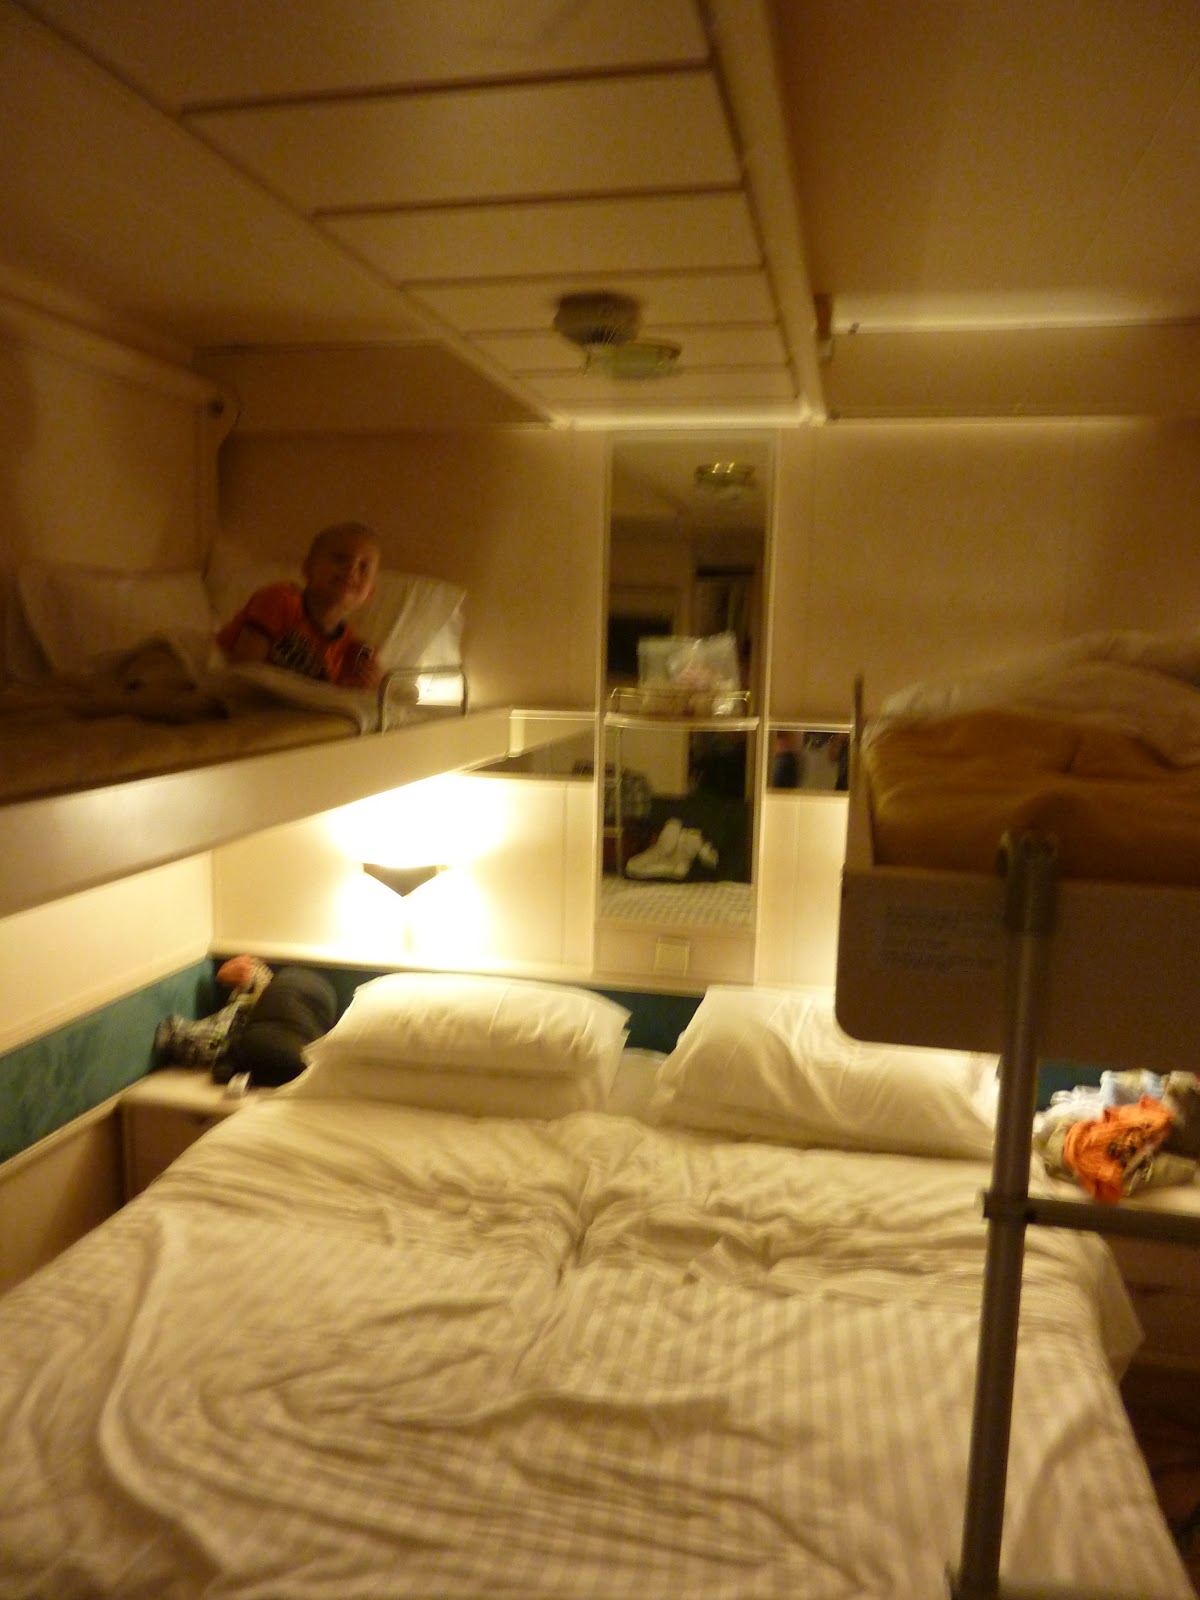 Raising kiwis it 39 s cruising time for Rhapsody of the seas cabins deck 2